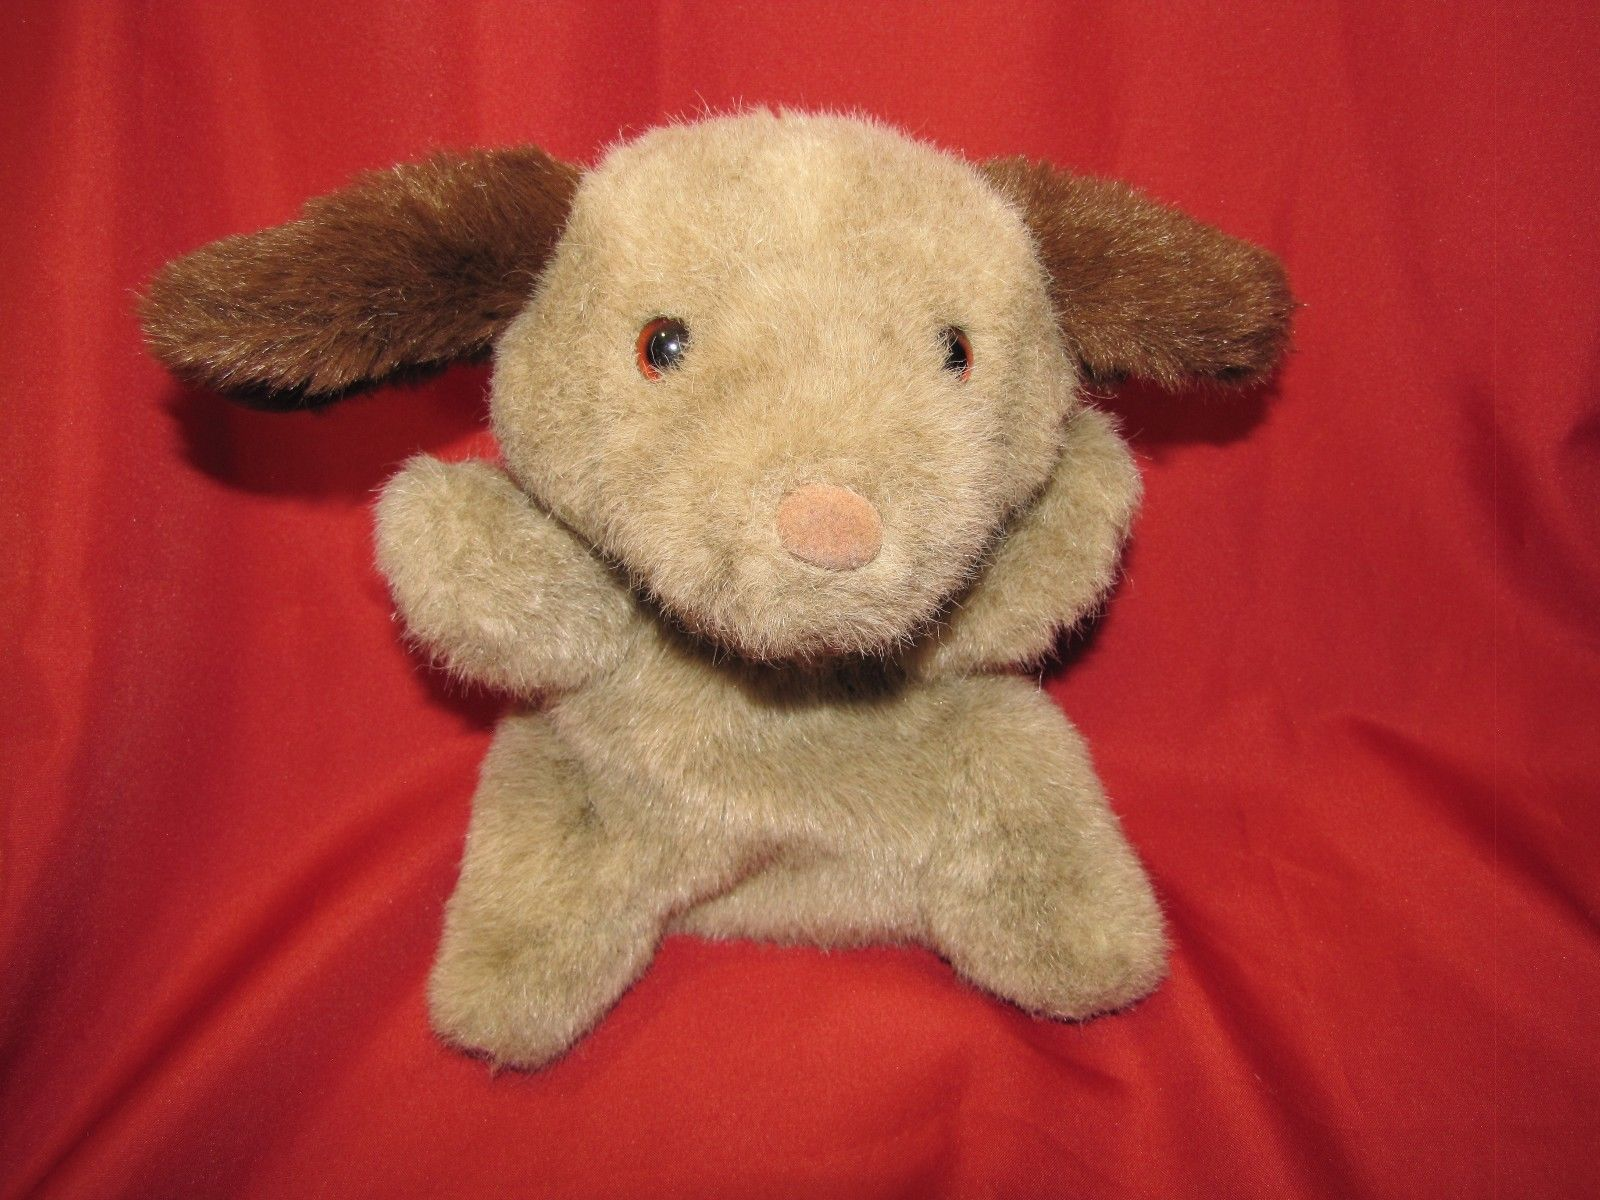 COMMONWEALTH STUFFED PLUSH HAND PUPPET HUG A PLUSH 1989 TAN BROWN PUPPY DOG image 2